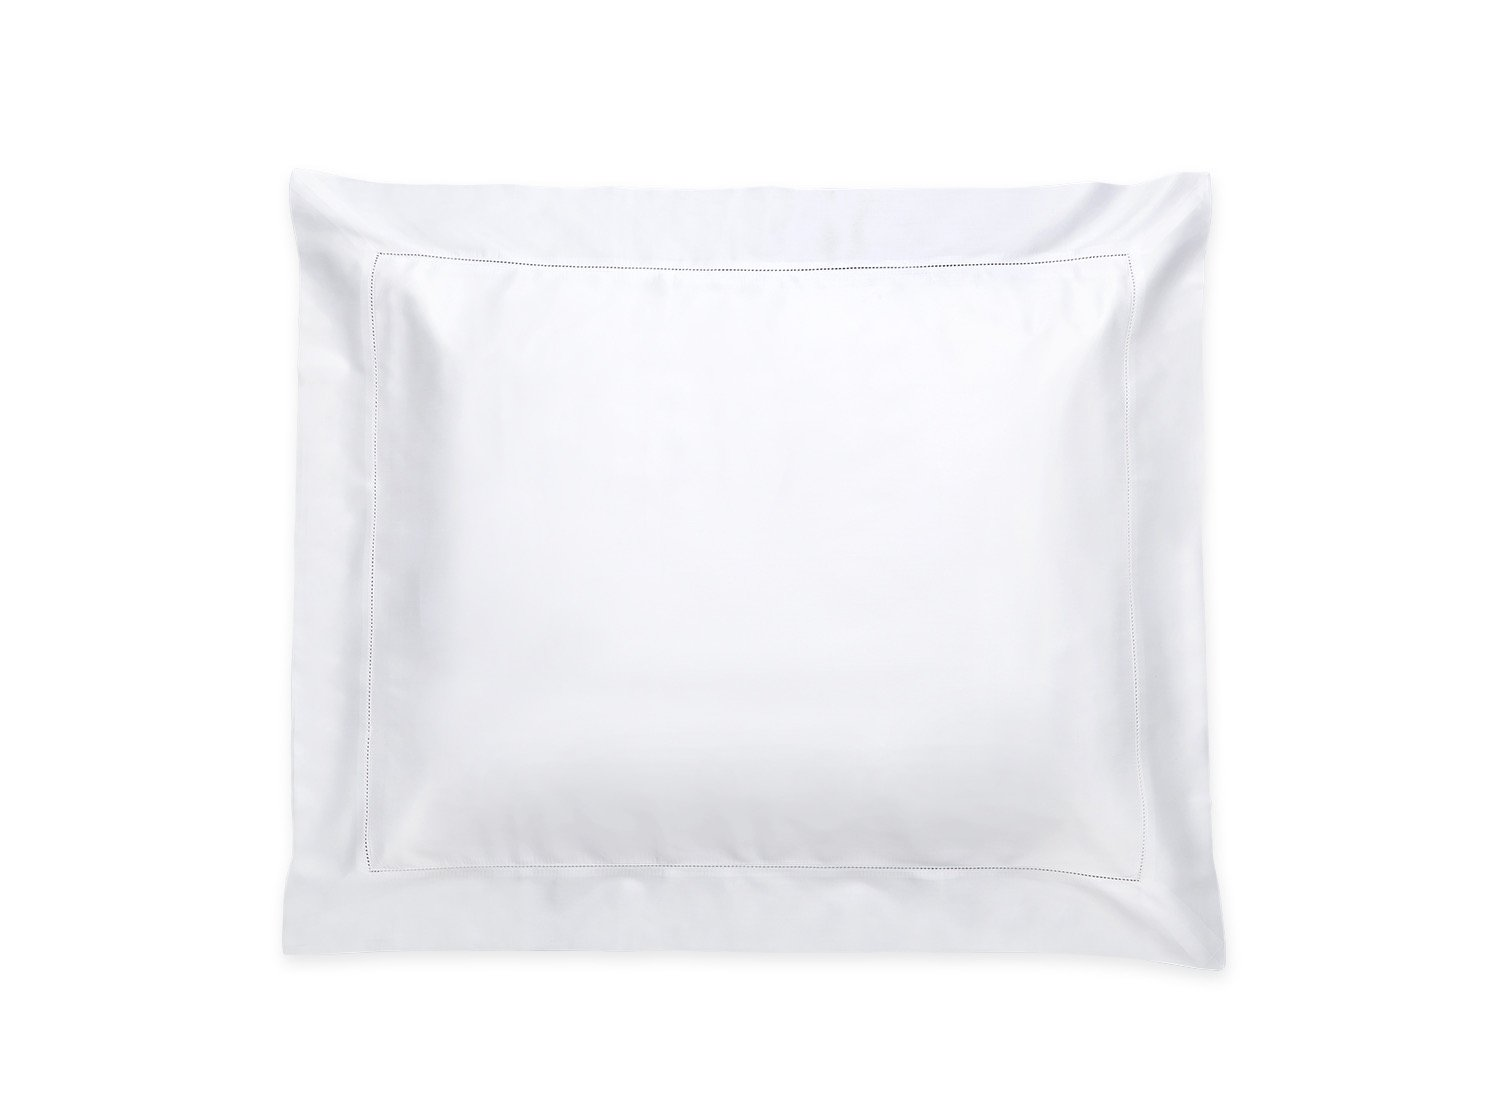 Nocturne Hemstitch White Sham | Matouk Sateen Bedding